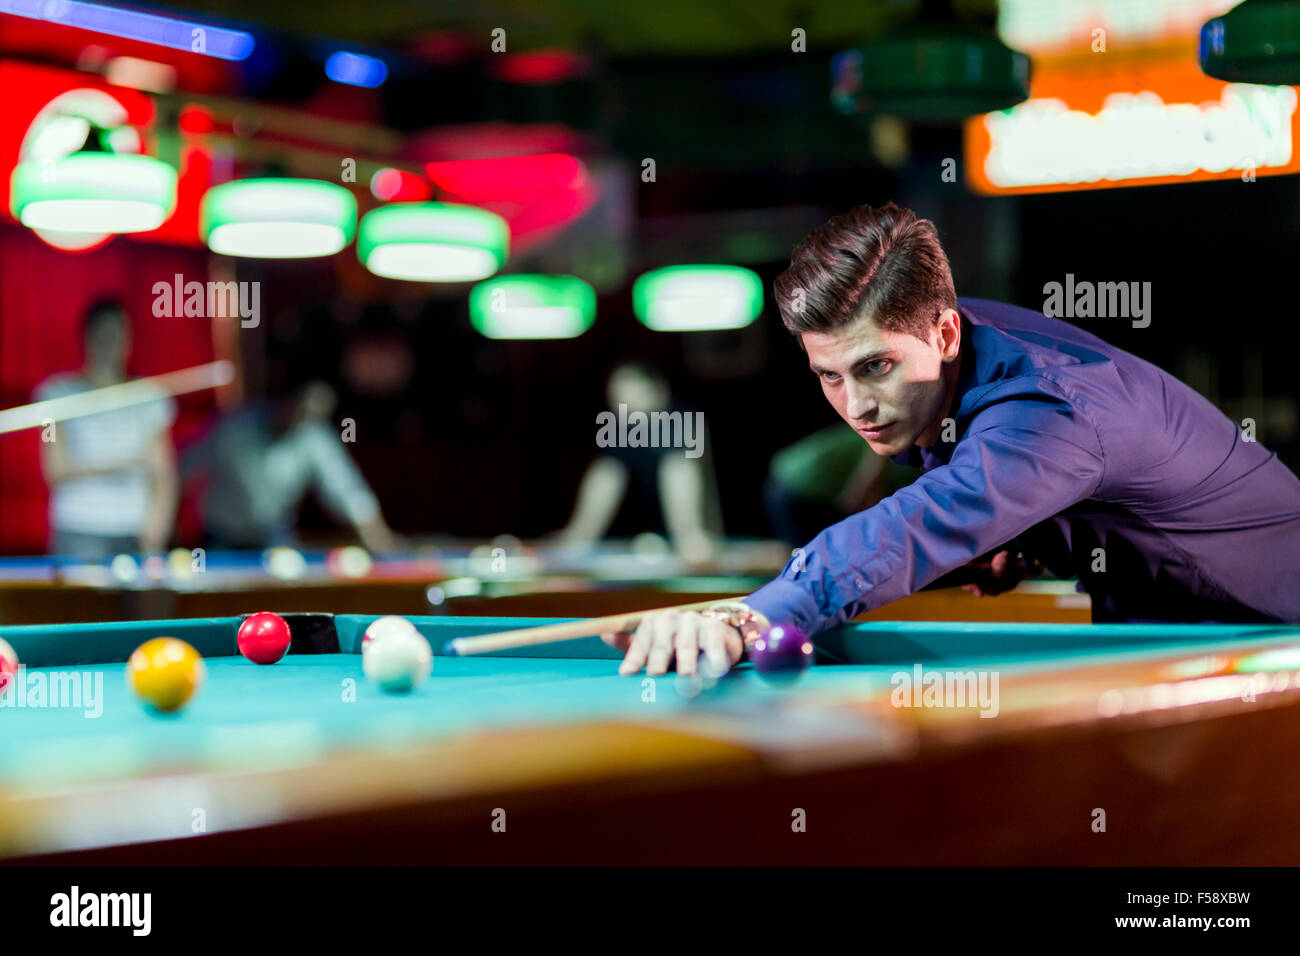 Young handsome man leaning over the table while playing snooker - Stock Image